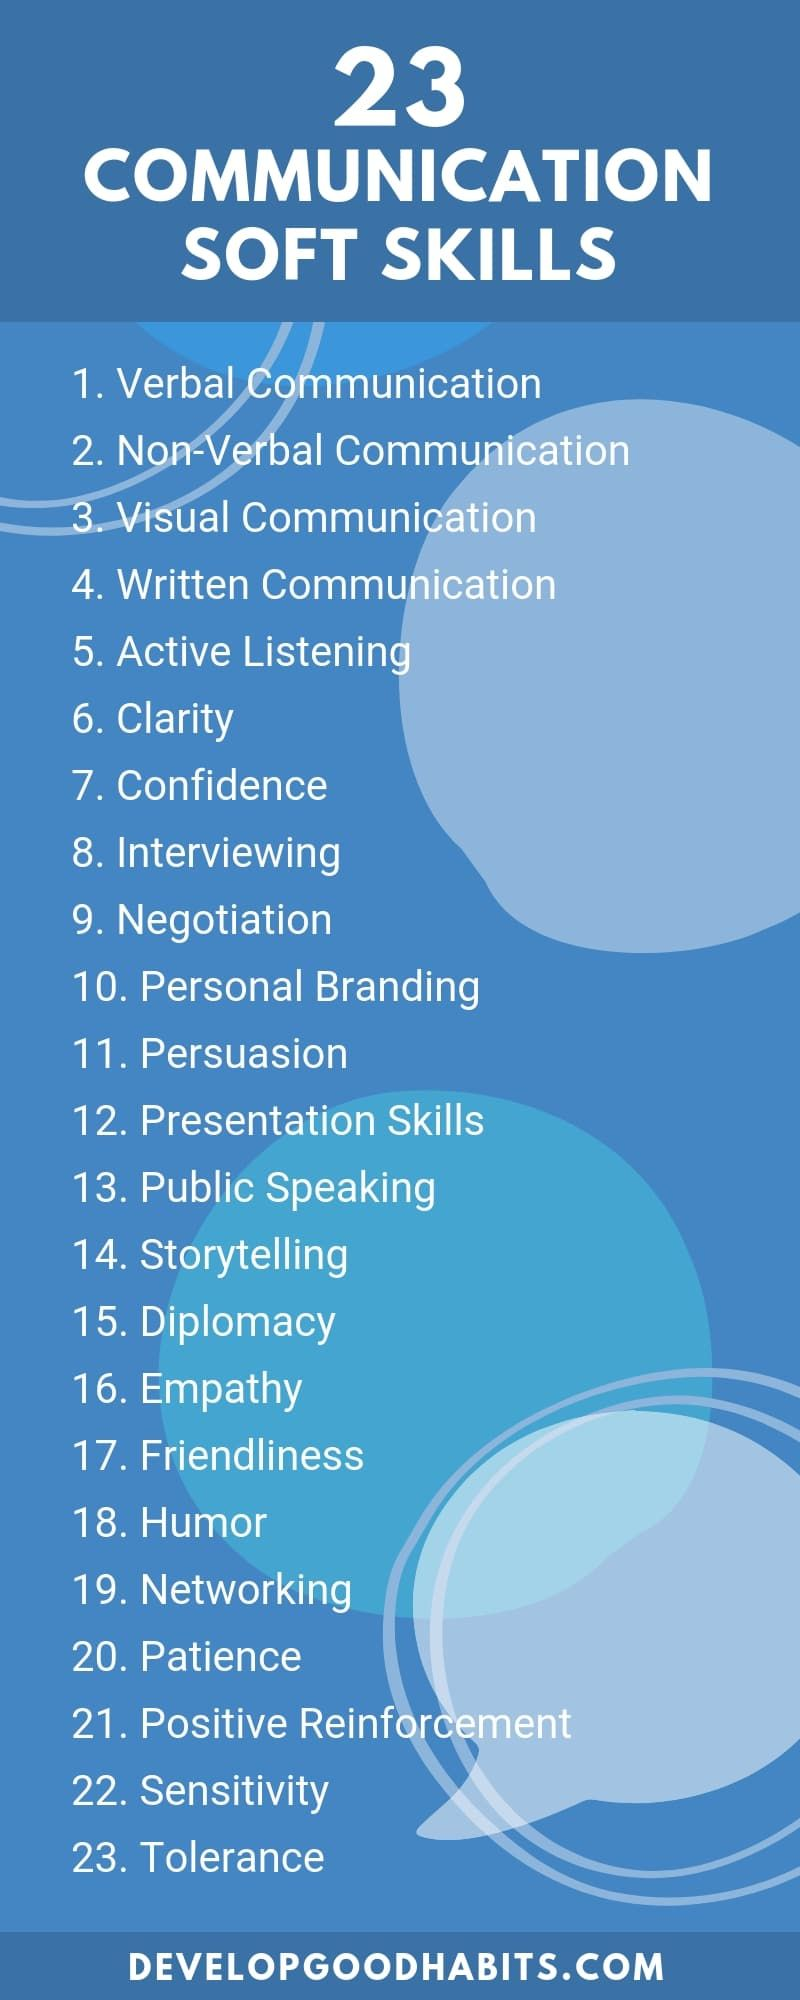 Communication skills are perhaps the most important among all the soft skills listed here. No matter what your position is, you need to be able to communicate effectively with people you work with.    Use these 23 Communication Soft Skills in the workplace and in your resume to skyrocket your career. #infographic #commmunication #resume #resumeexamples #resumetips #workplace #career #careeradvice #careertips #softskills #personaldevelopment #selfimprovement